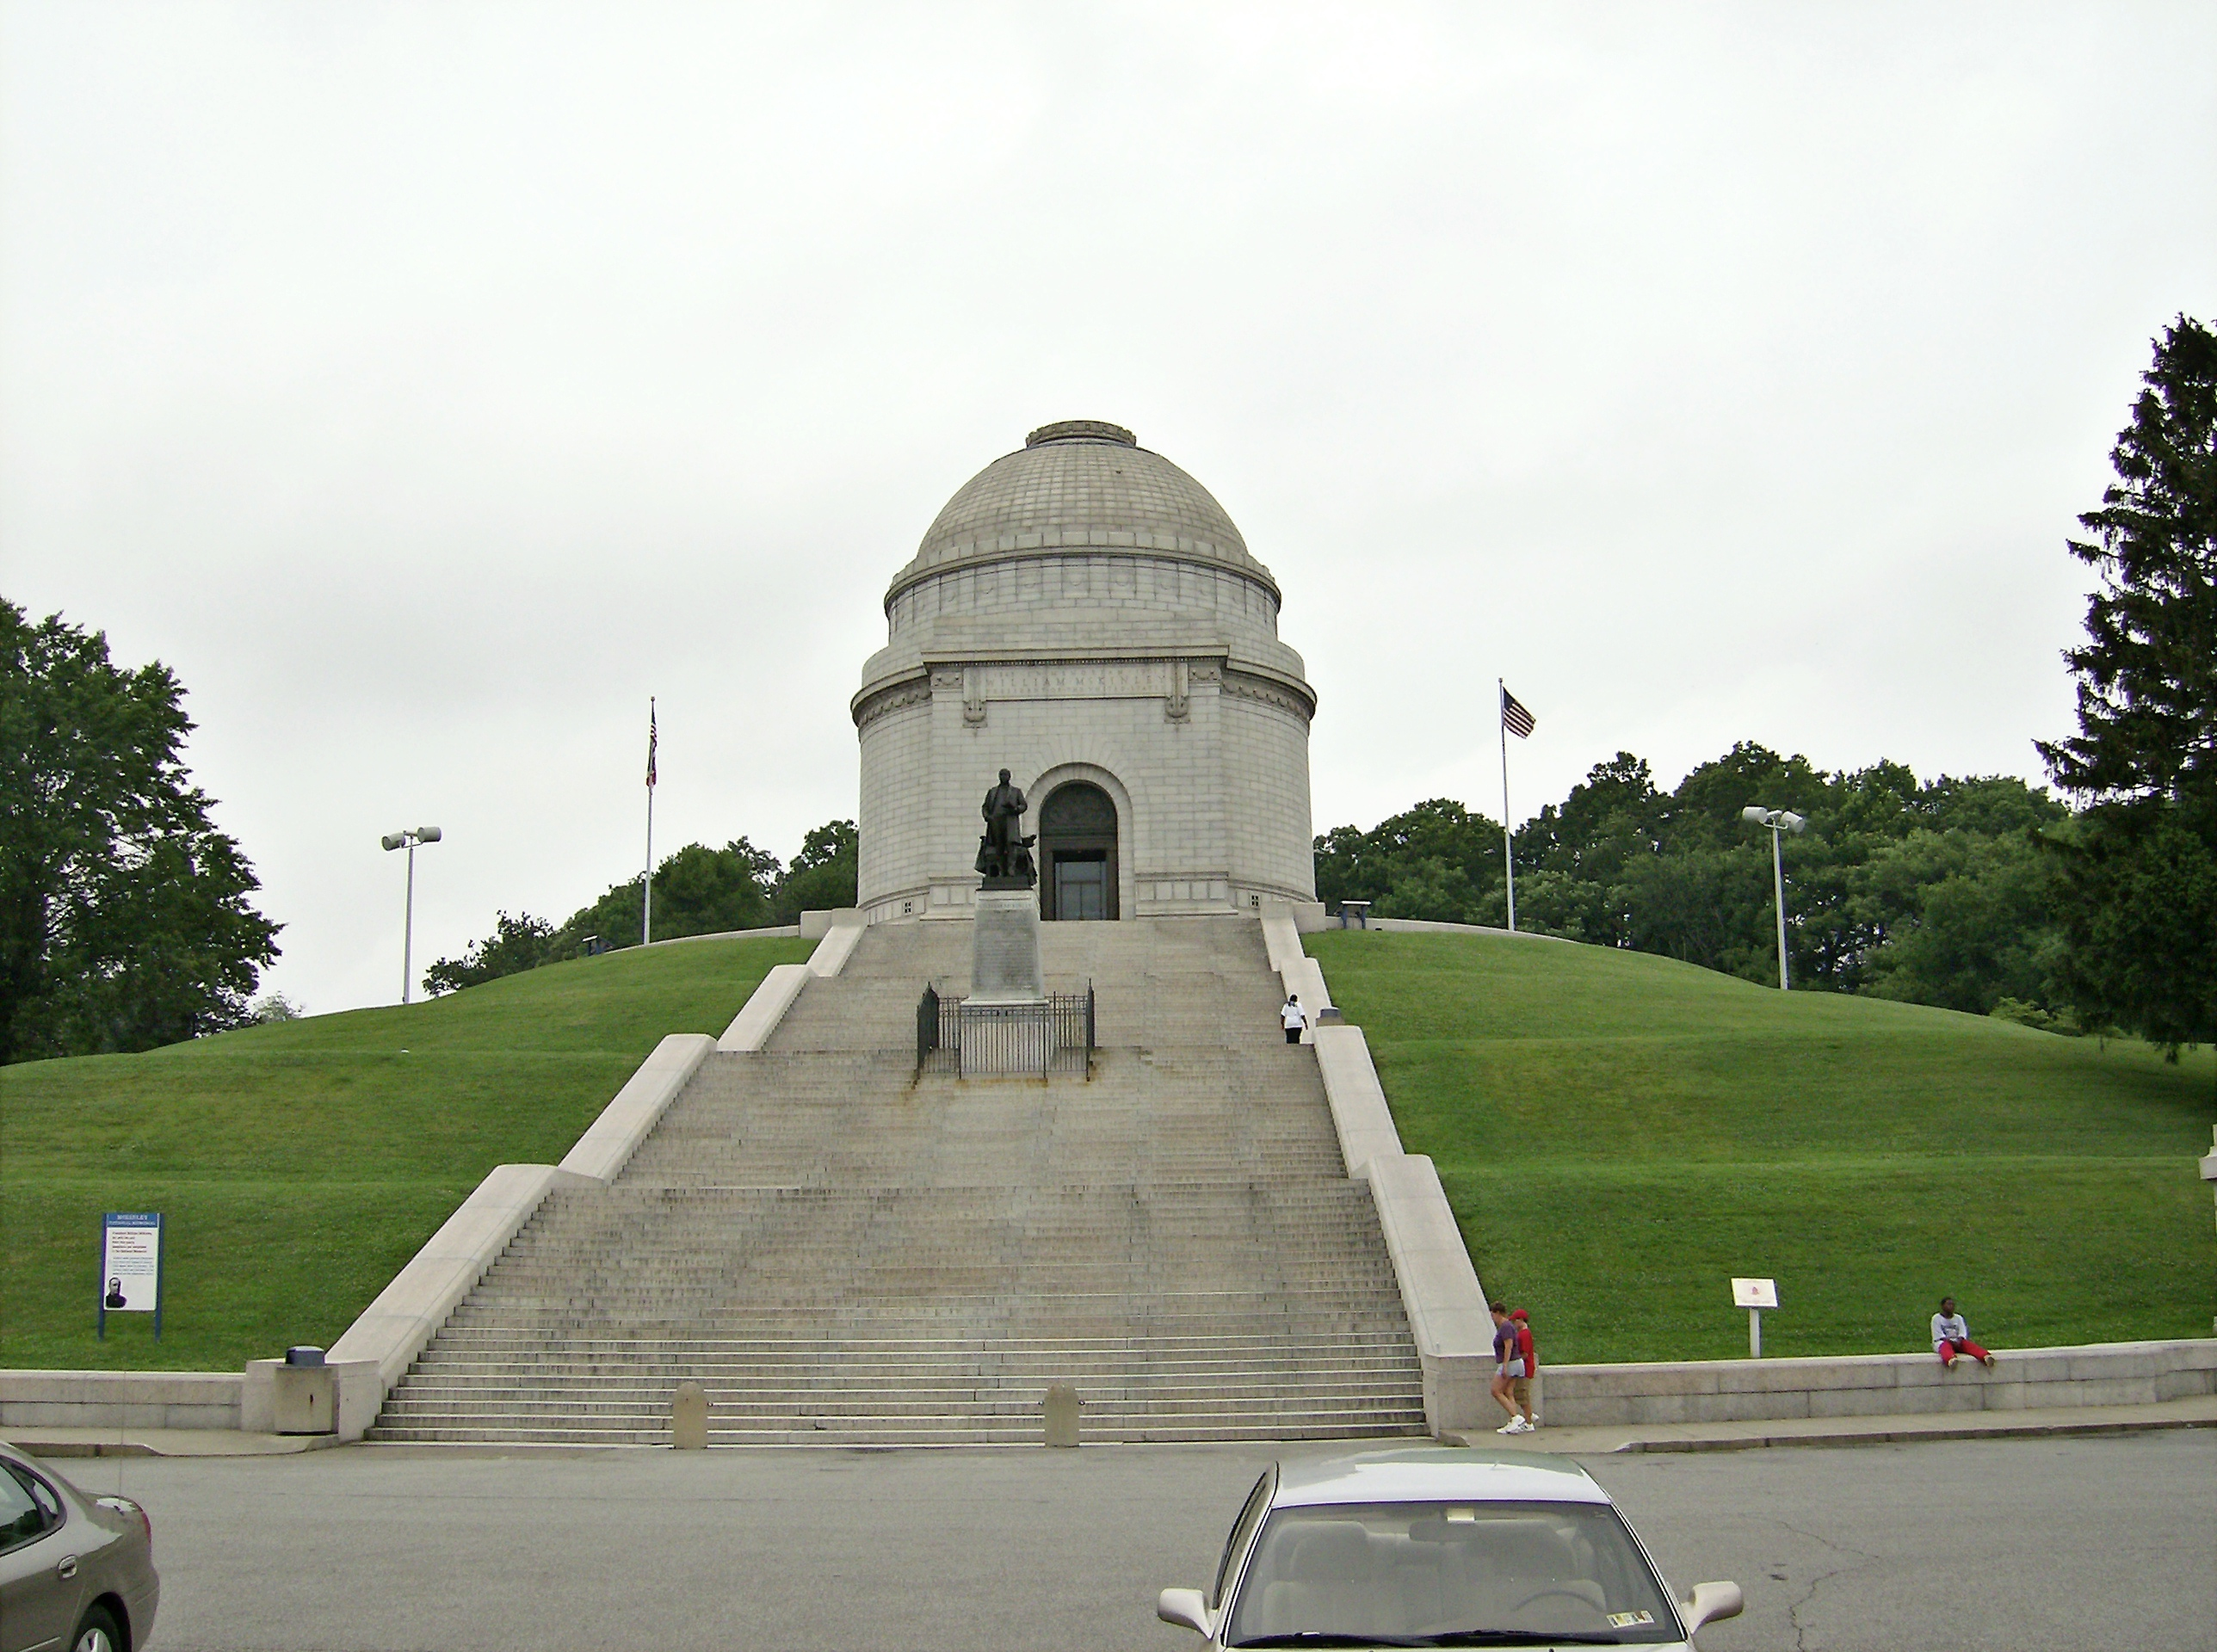 Grave of US president William McKinley. McKinley National Memorial, Canton OH. Photo taken on June 27, 2006.